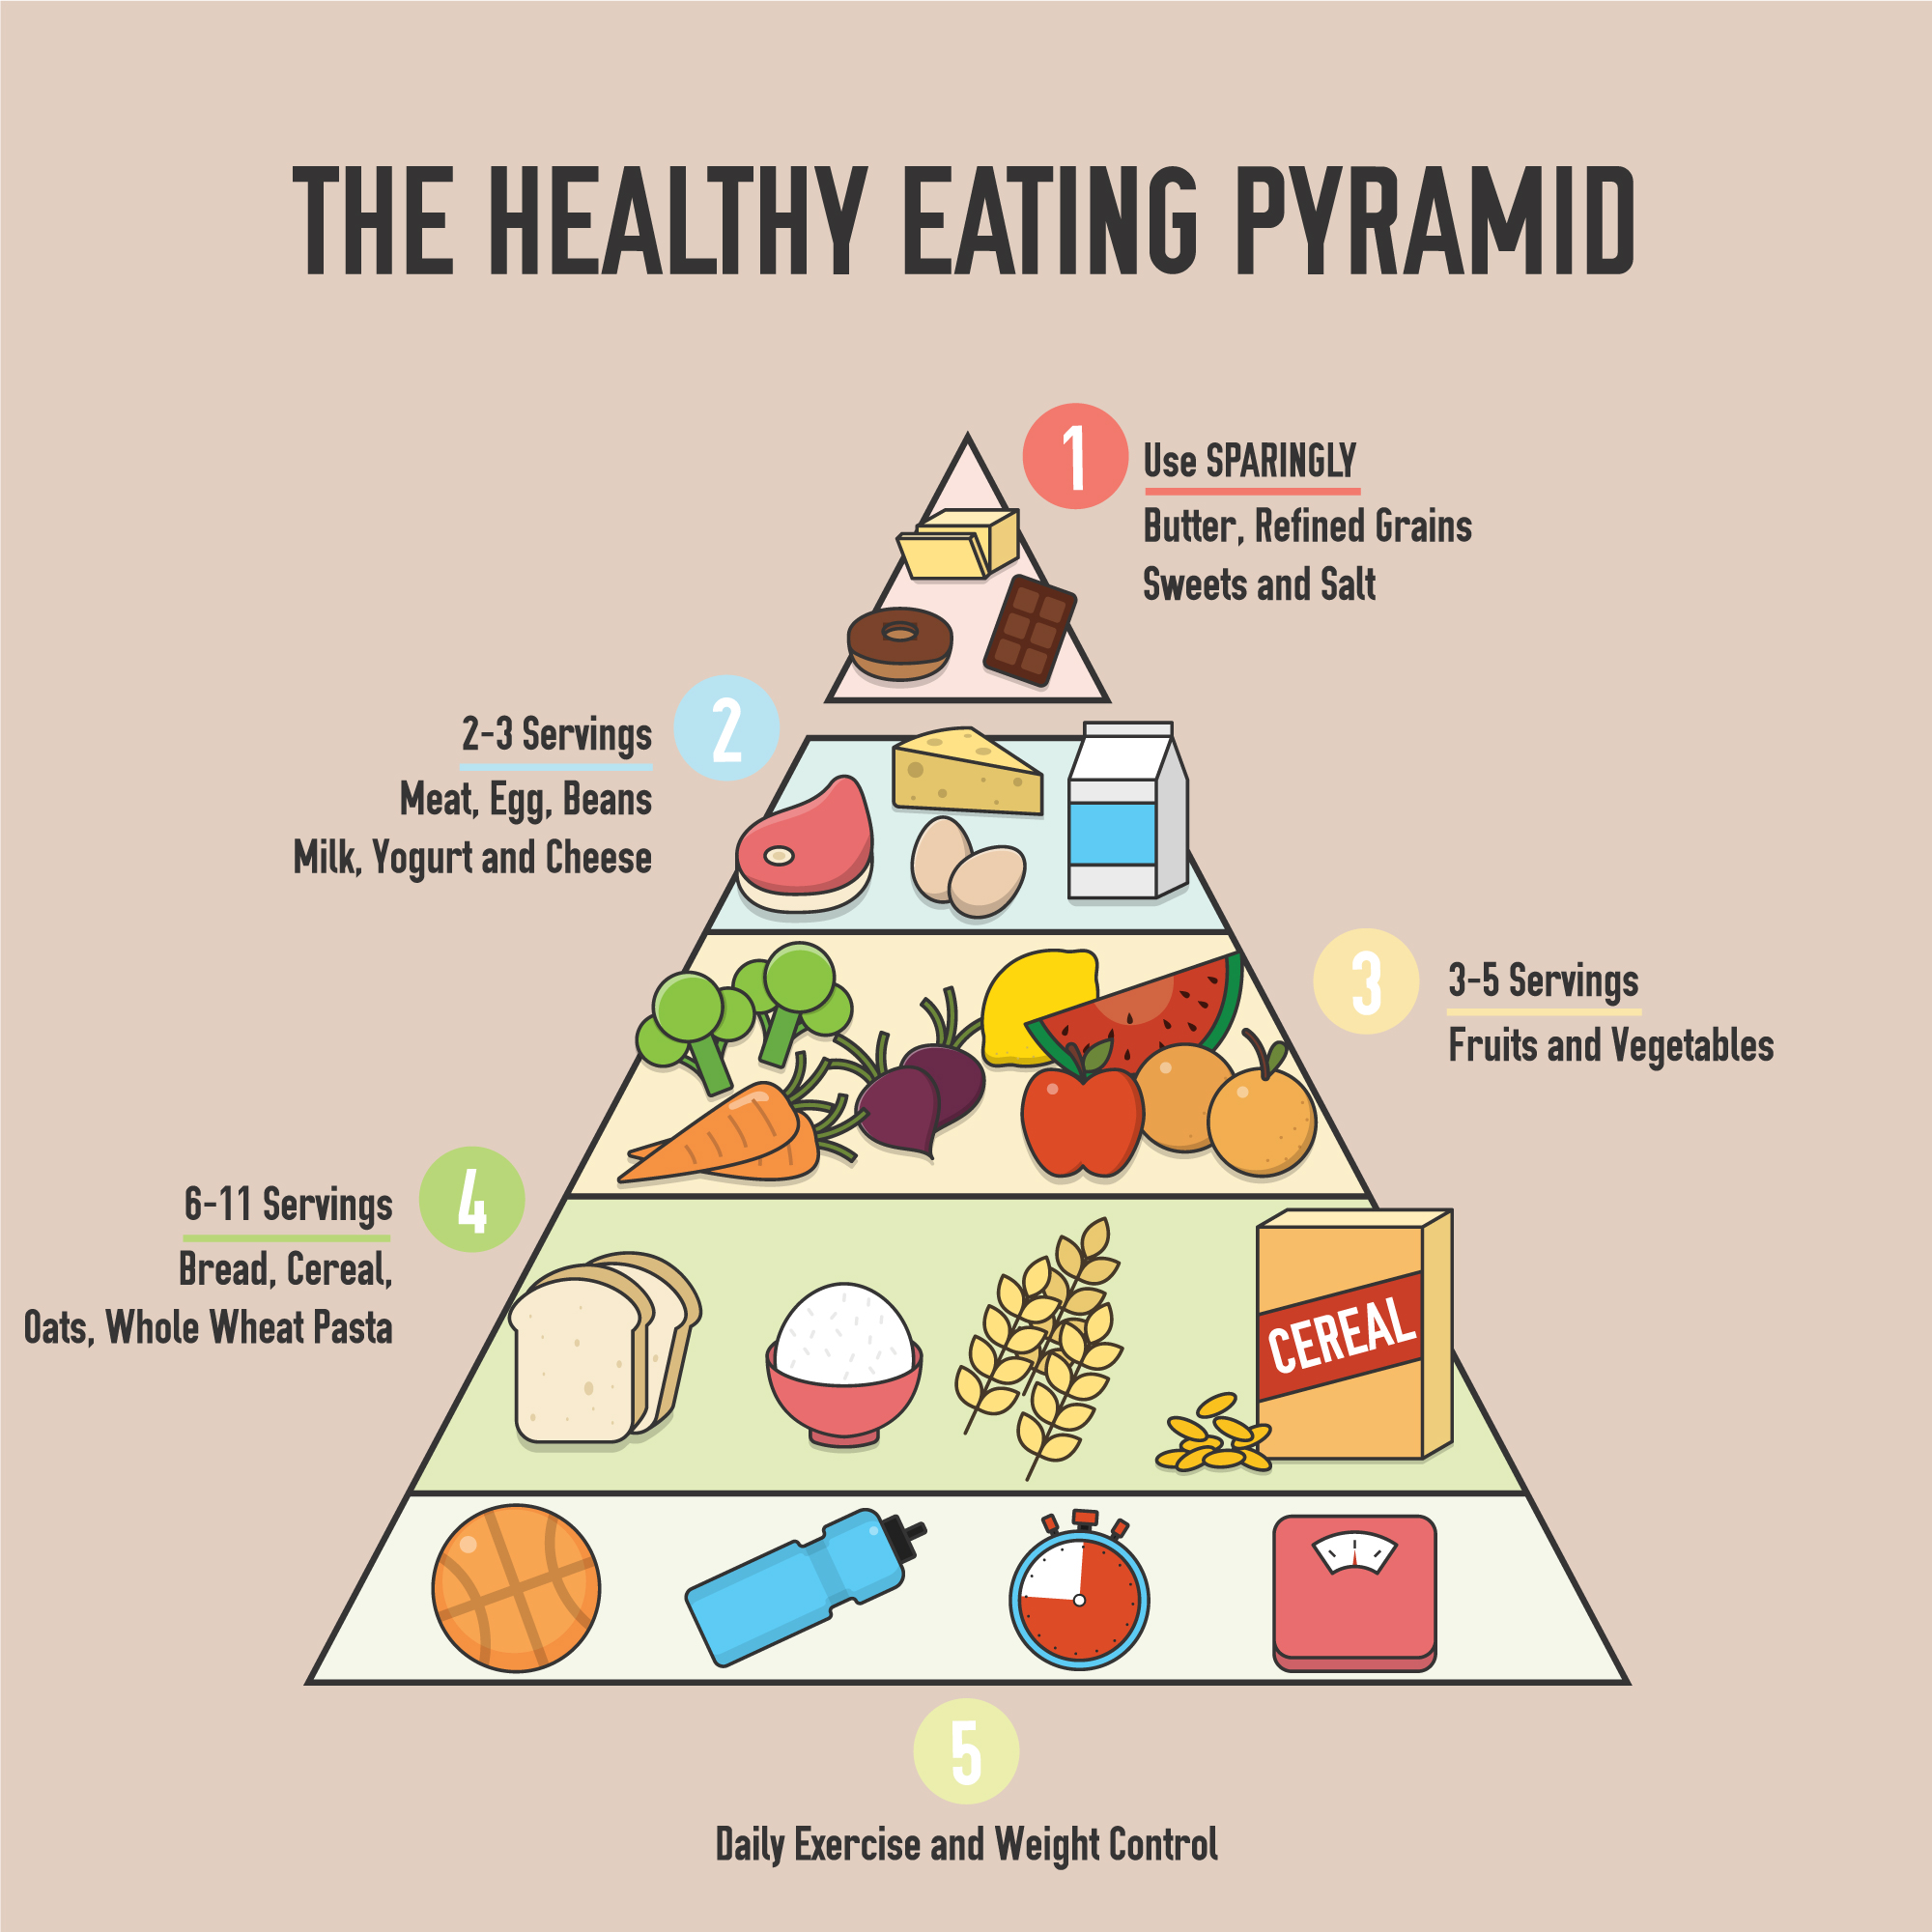 Healthy eating pyramid background